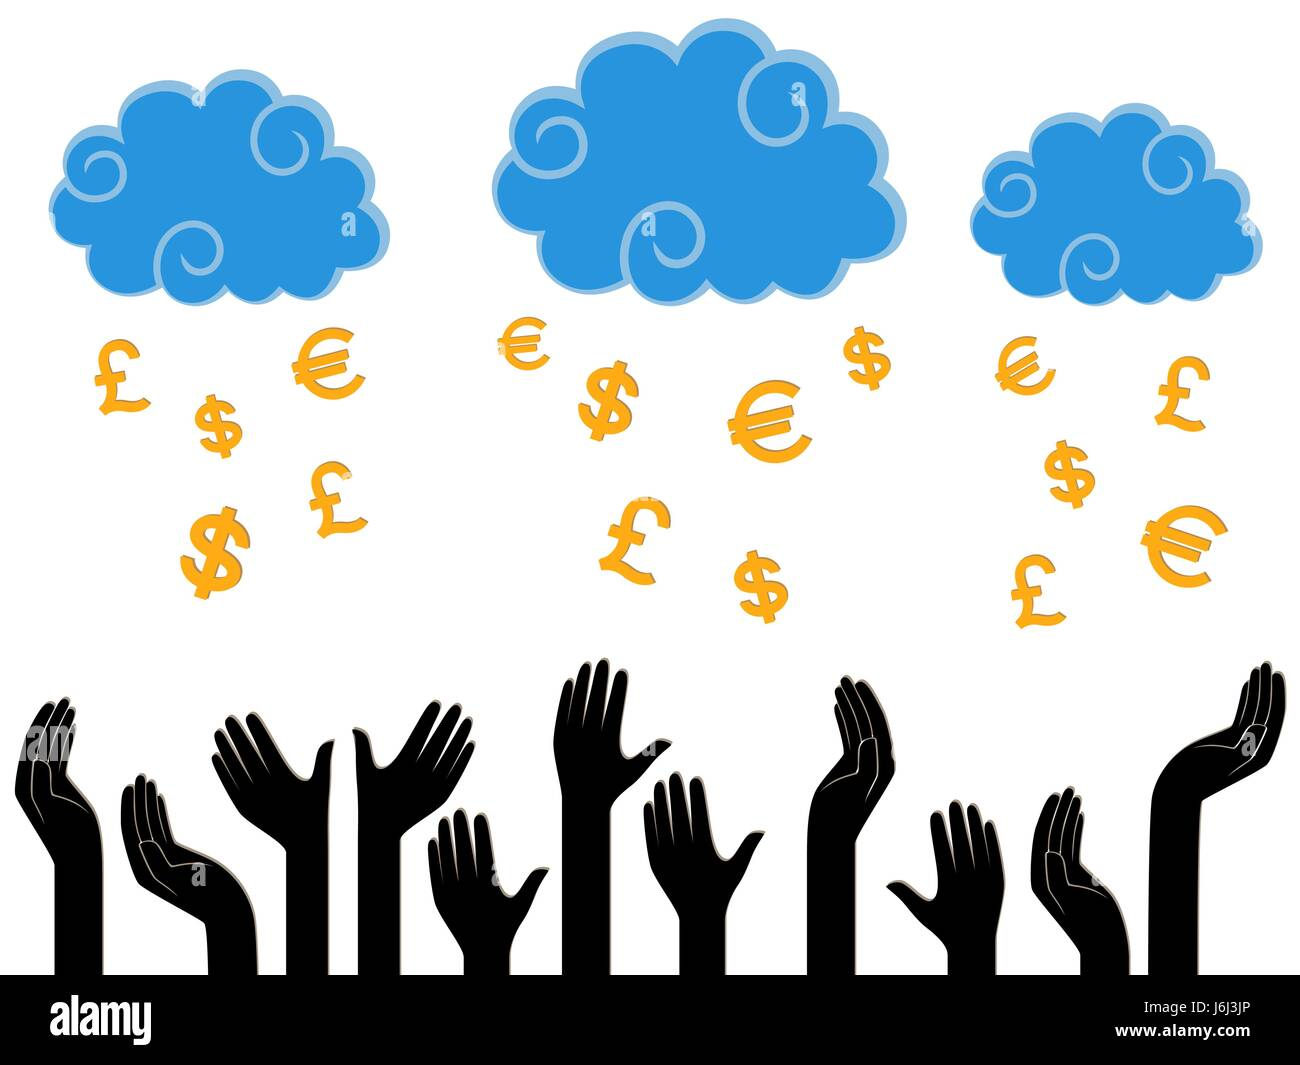 Dollars, Pounds and Euro falling from the Heaven in the human hands, stylised conceptual vector illustration - Stock Image